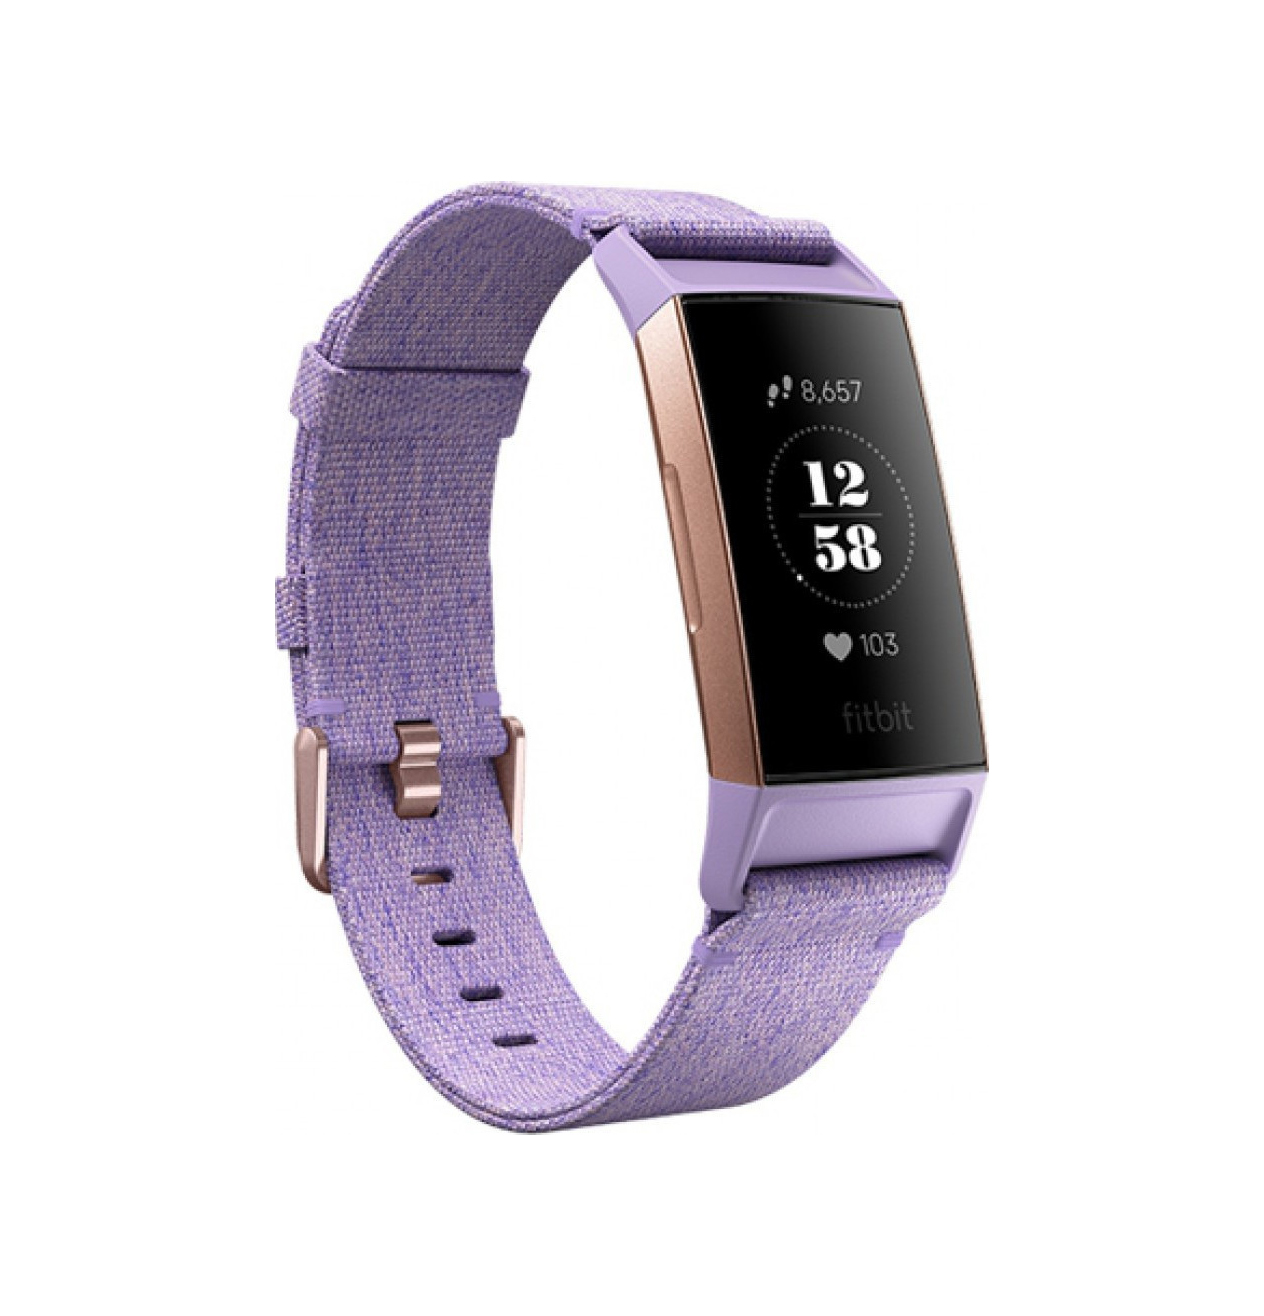 Fitbit Charge 3 Special Edition Lavender Πληρωμή έως 24 δόσεις